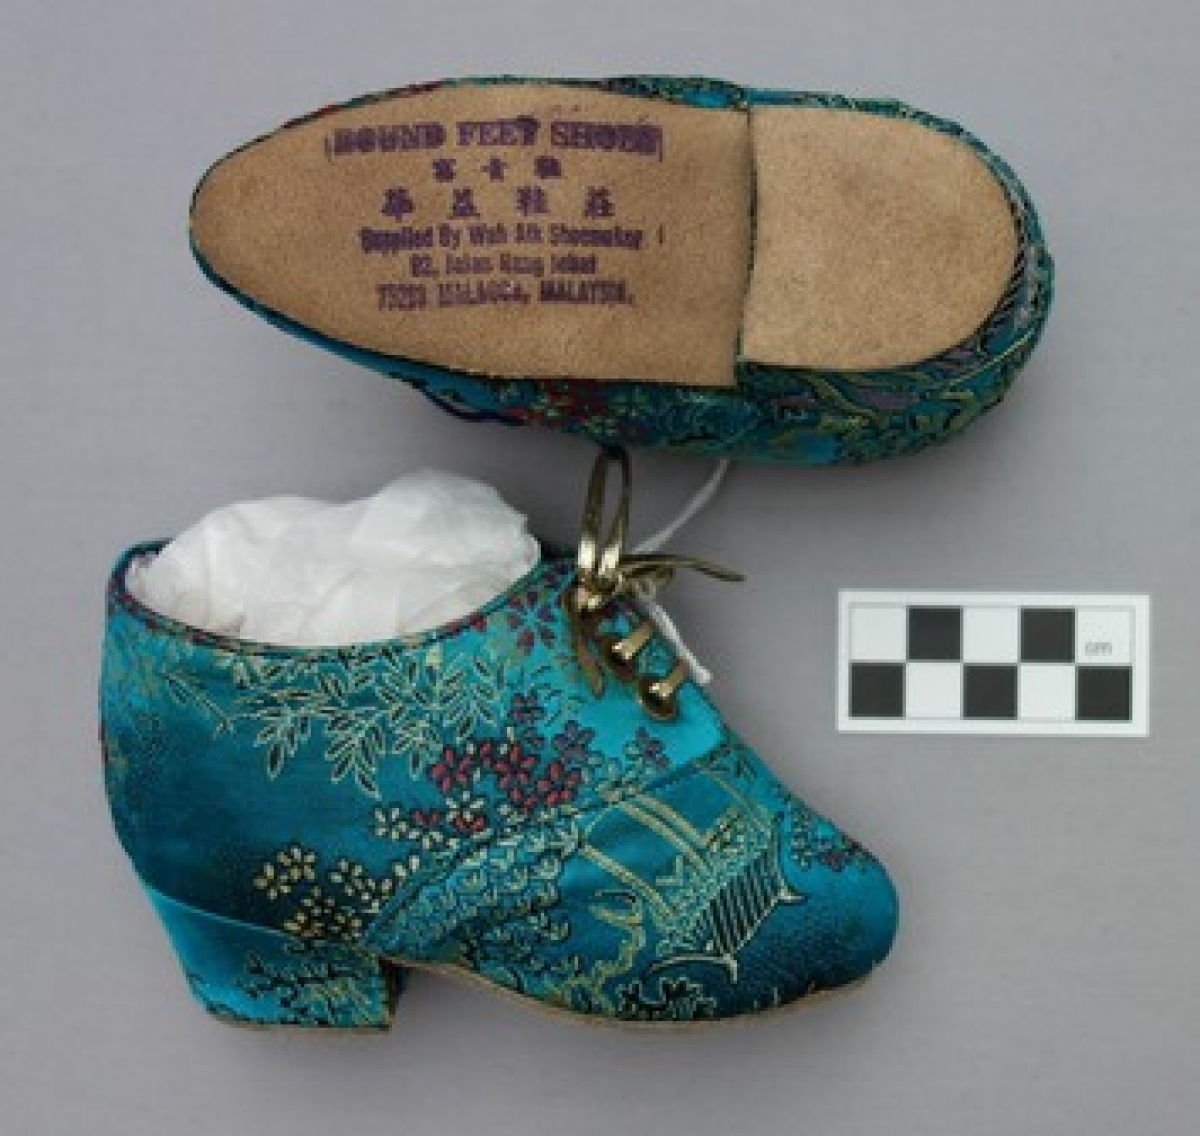 A pair of lotus shoes from Malaysia (late 20th century).